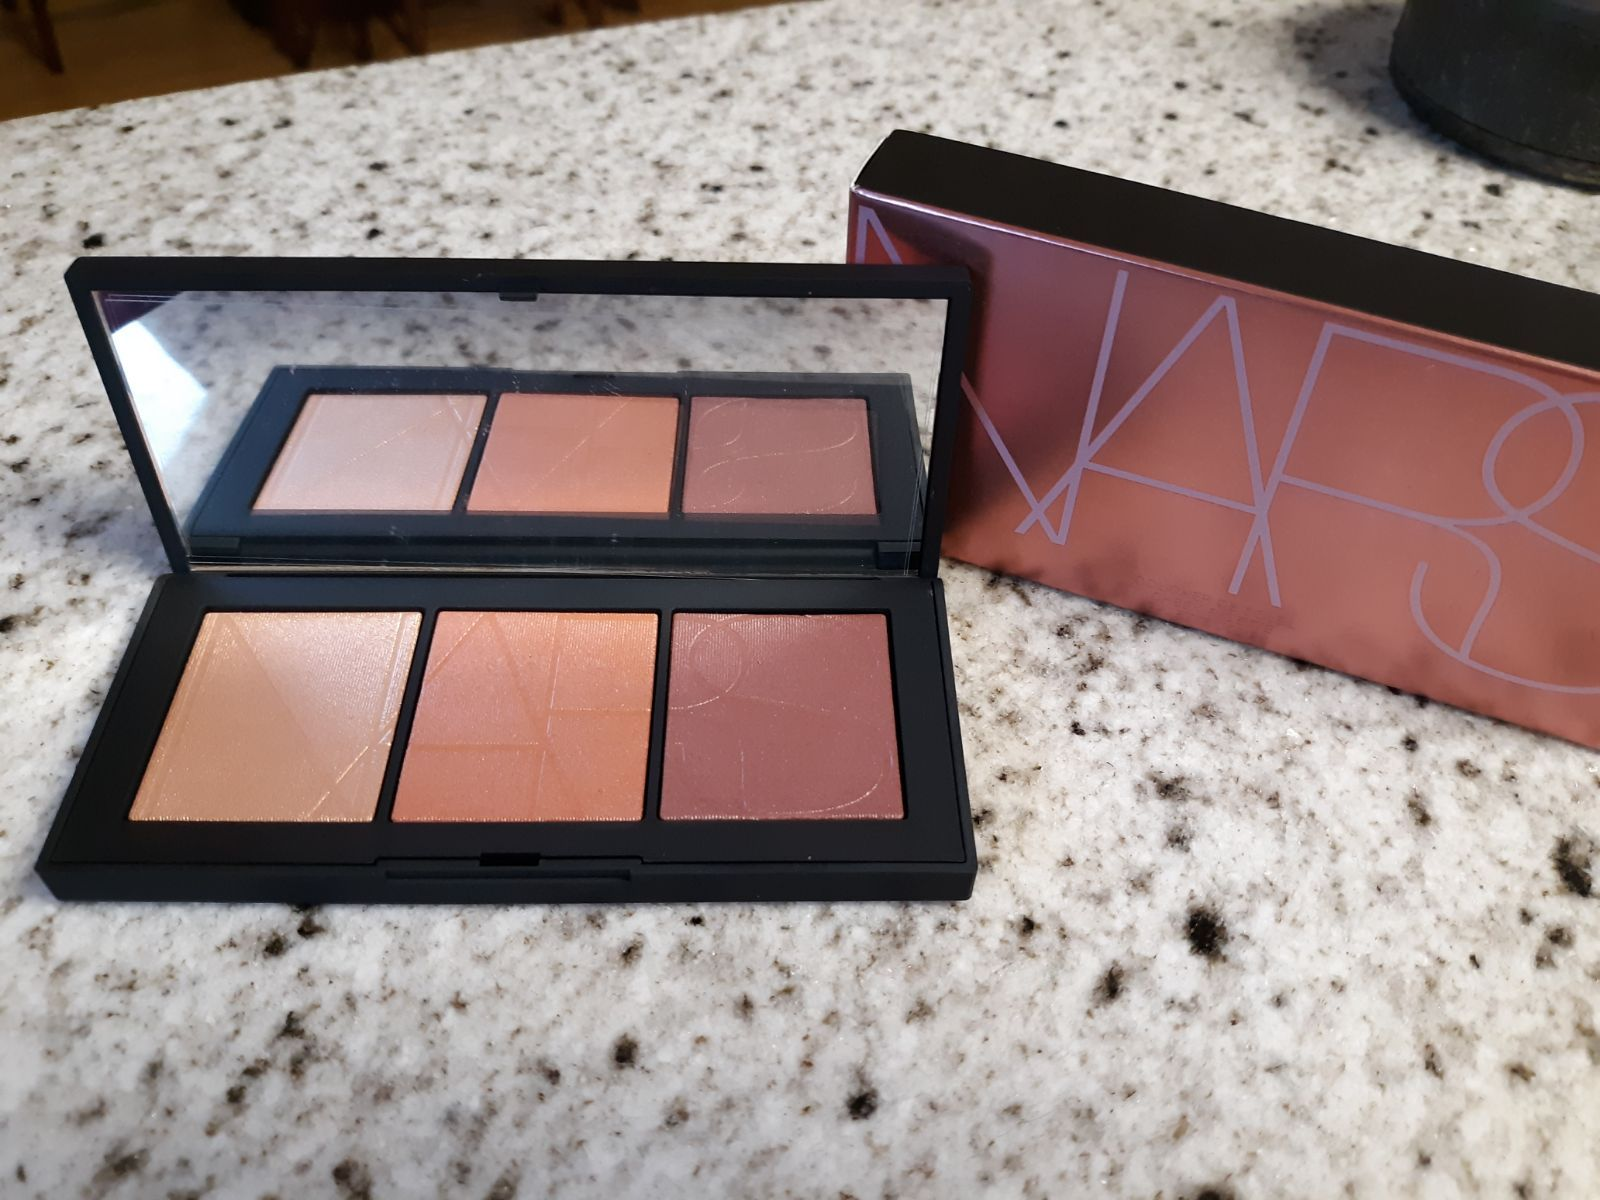 NARS Coucher De Soleil Cheek Palette  Limited Edition   Brand New, Unused & 100% AUTHENTIC! I will provide a copy of the original sales receipt upon request! Buy with Confidence!!  A LIMITED-EDITION CHEEK PALETTE OF OPALESCENT WET/DRY HIGHLIGHTING POWDERS.   Glow all out with an illuminating palette of sun-kissed shades for a supernatural sheen. Limited-edition cheek colors feature a range of pink shimmers and golden bronzes that can be worn dry for a shimmering veil of second-skin color or wet  #colorpalettecopies